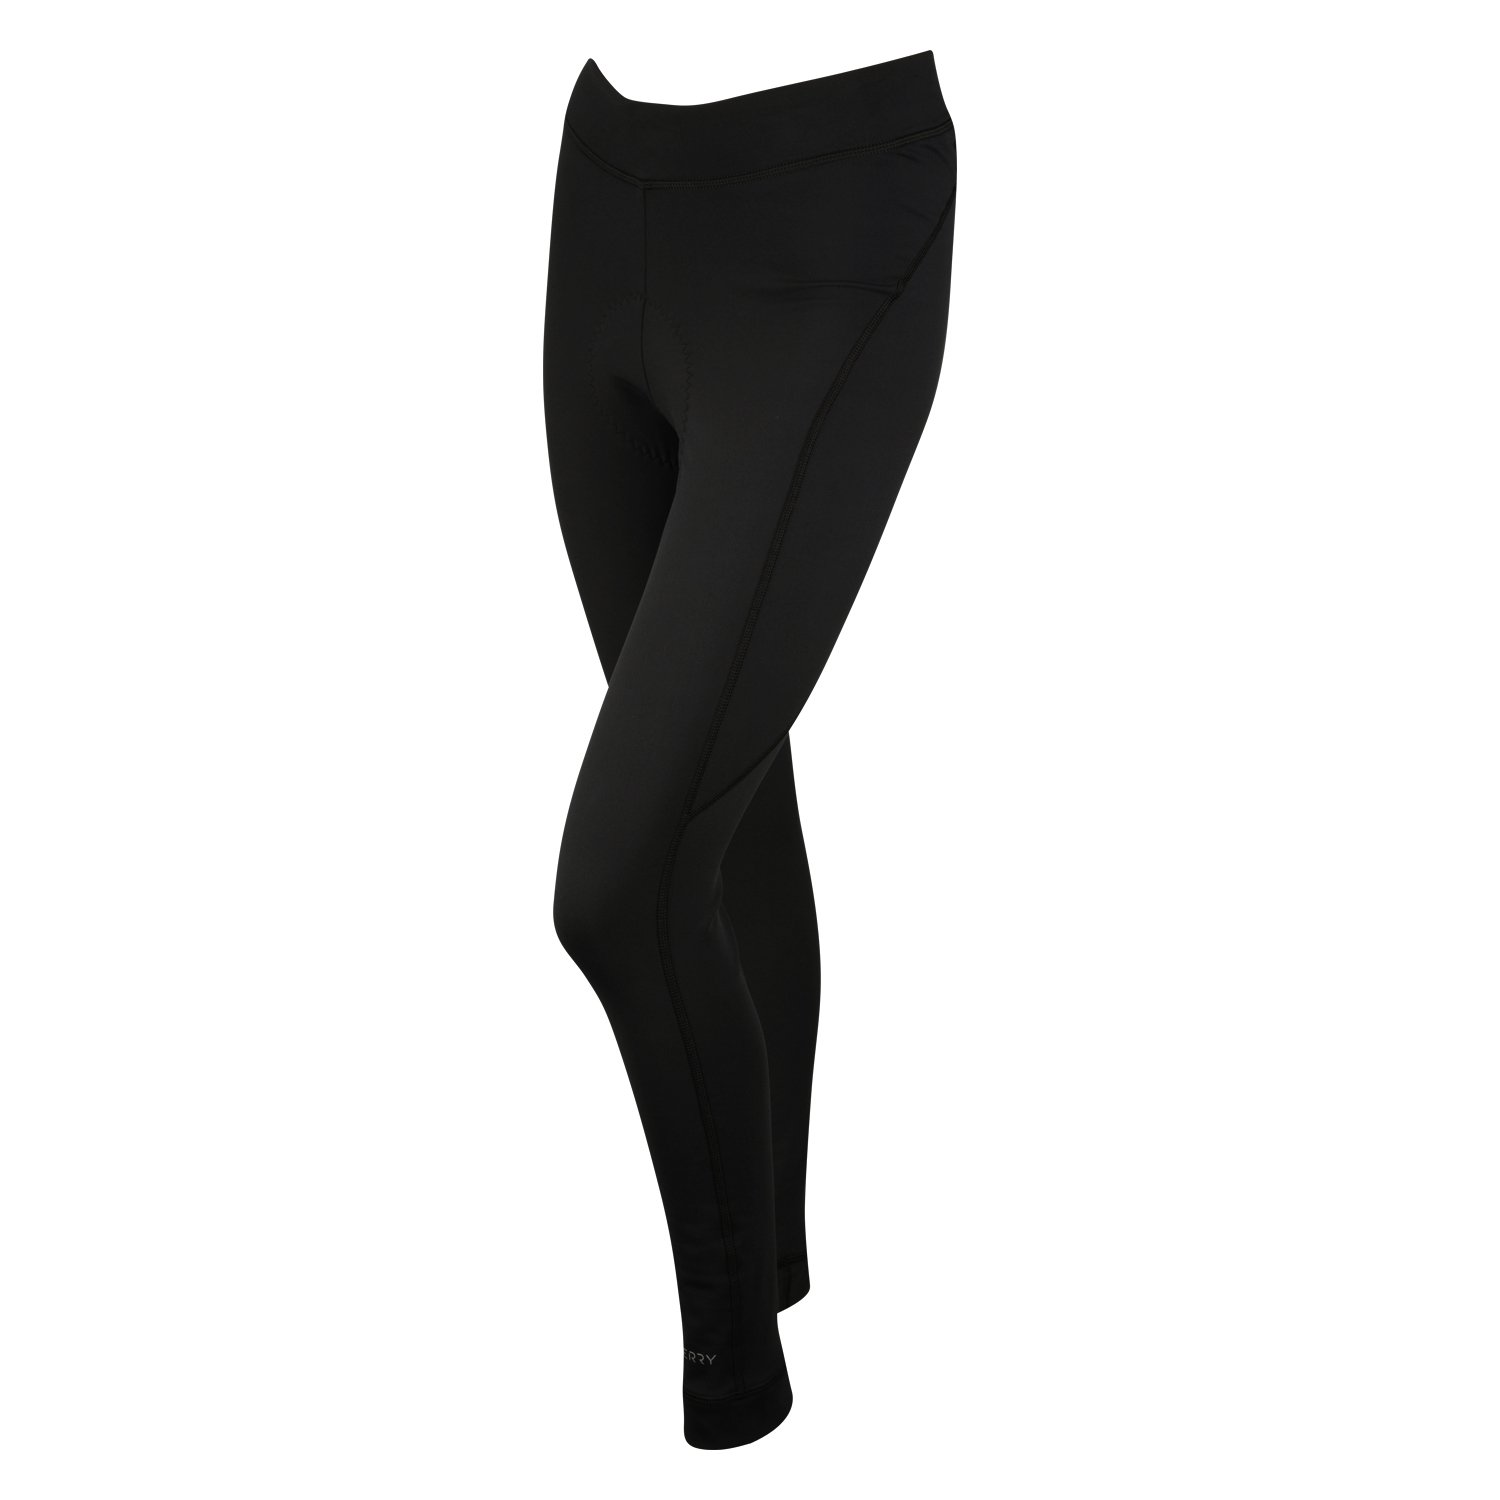 Terry Bicycles Thermal Tights - Women's Black, XL